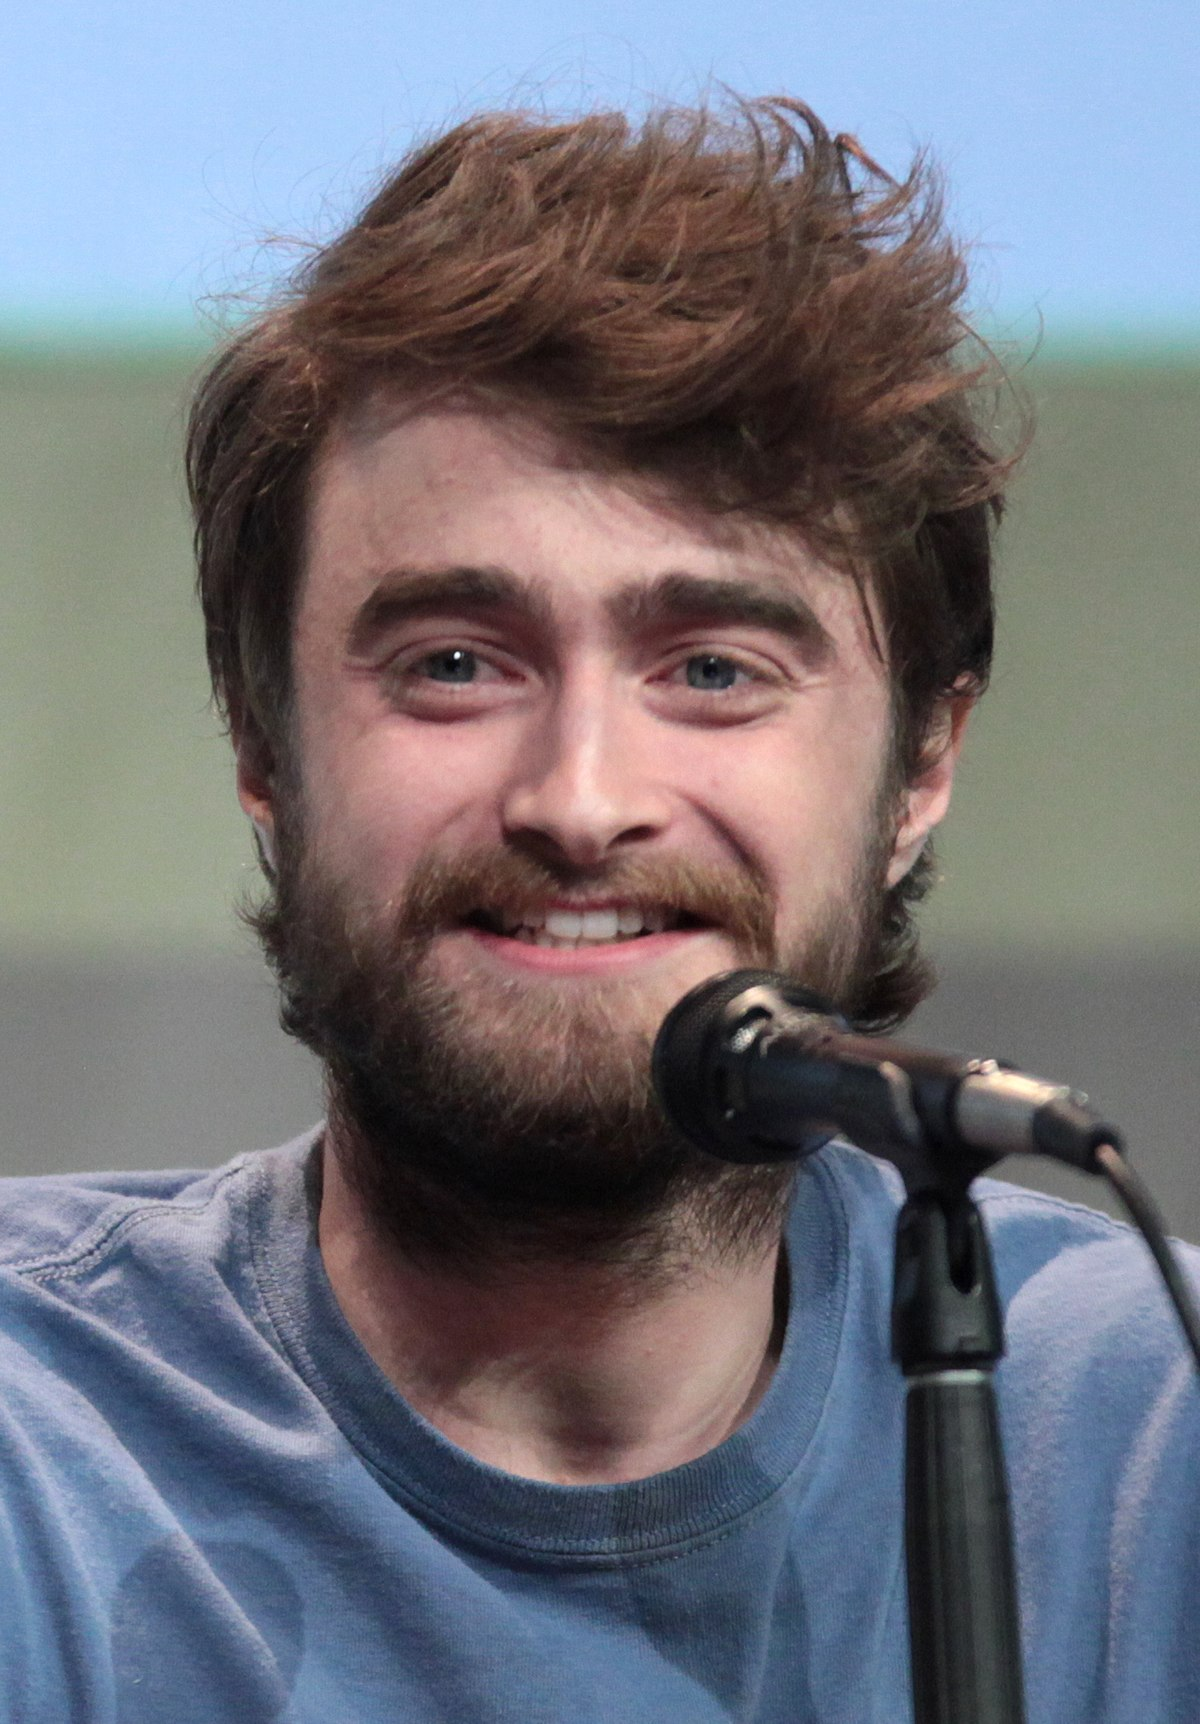 Daniel Radcliffe Wikipedia Never miss another show from josh potter. daniel radcliffe wikipedia